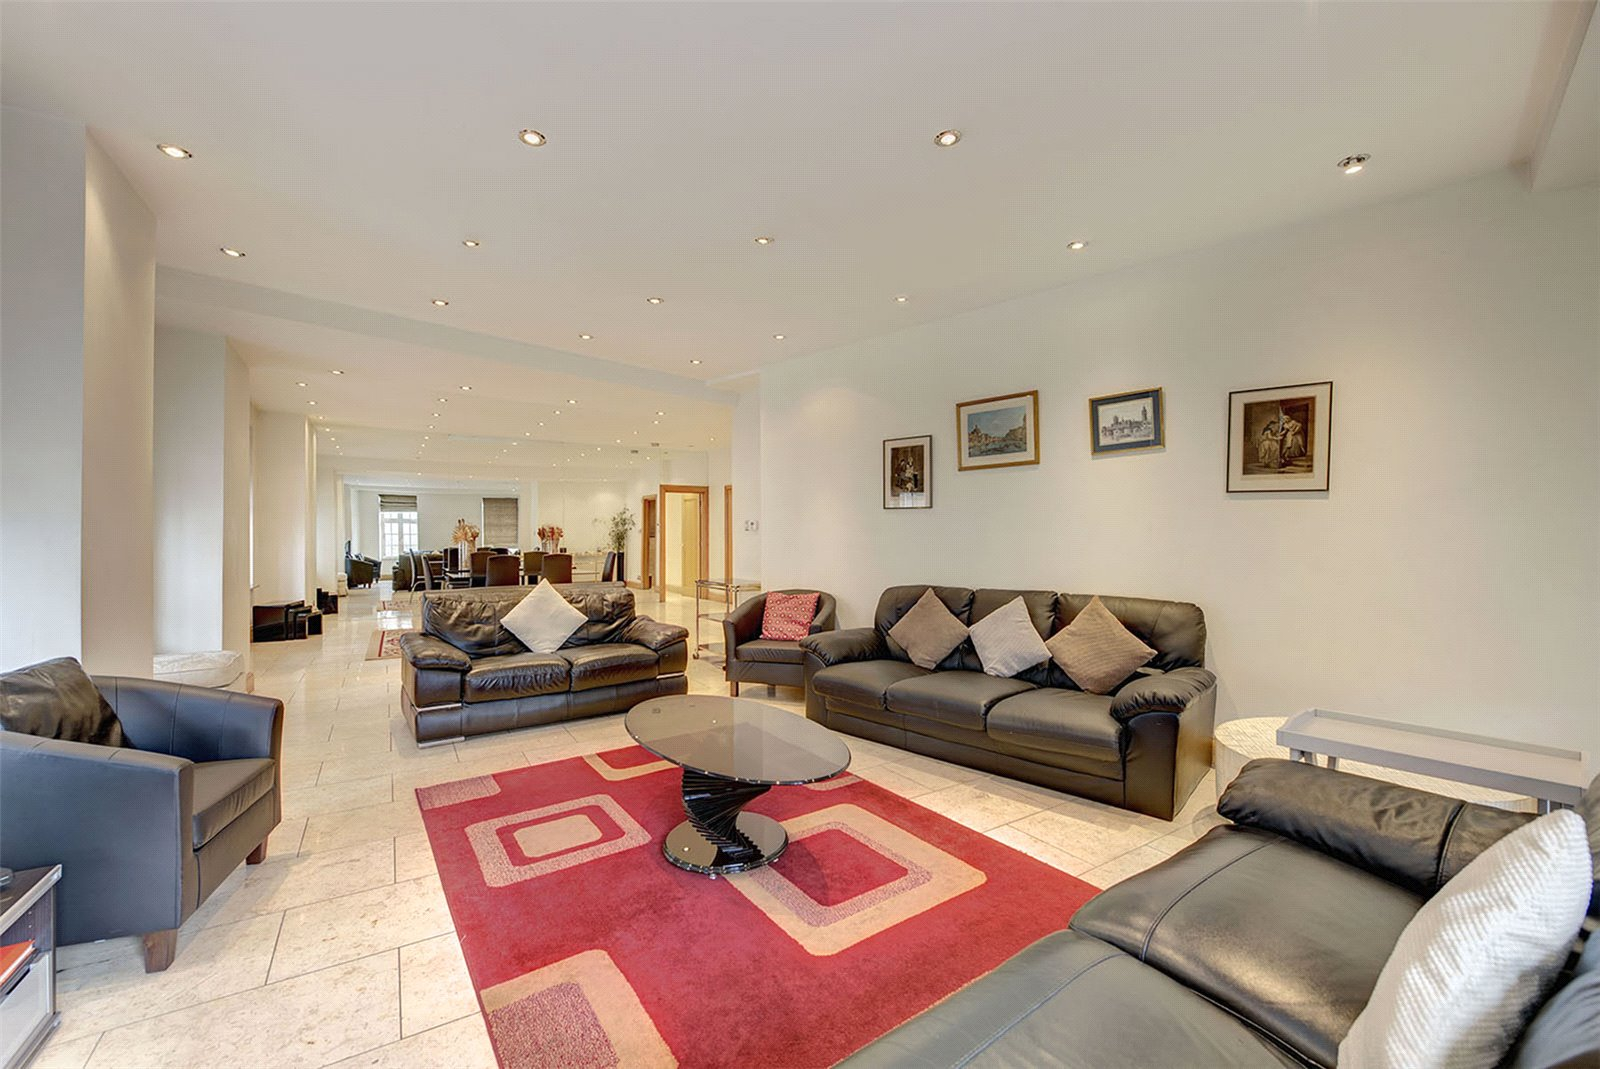 Apartments / Flats for Rent at Aldford House, Park Street, Mayfair, London, W1K Aldford House, Park Street, Mayfair, London, W1K